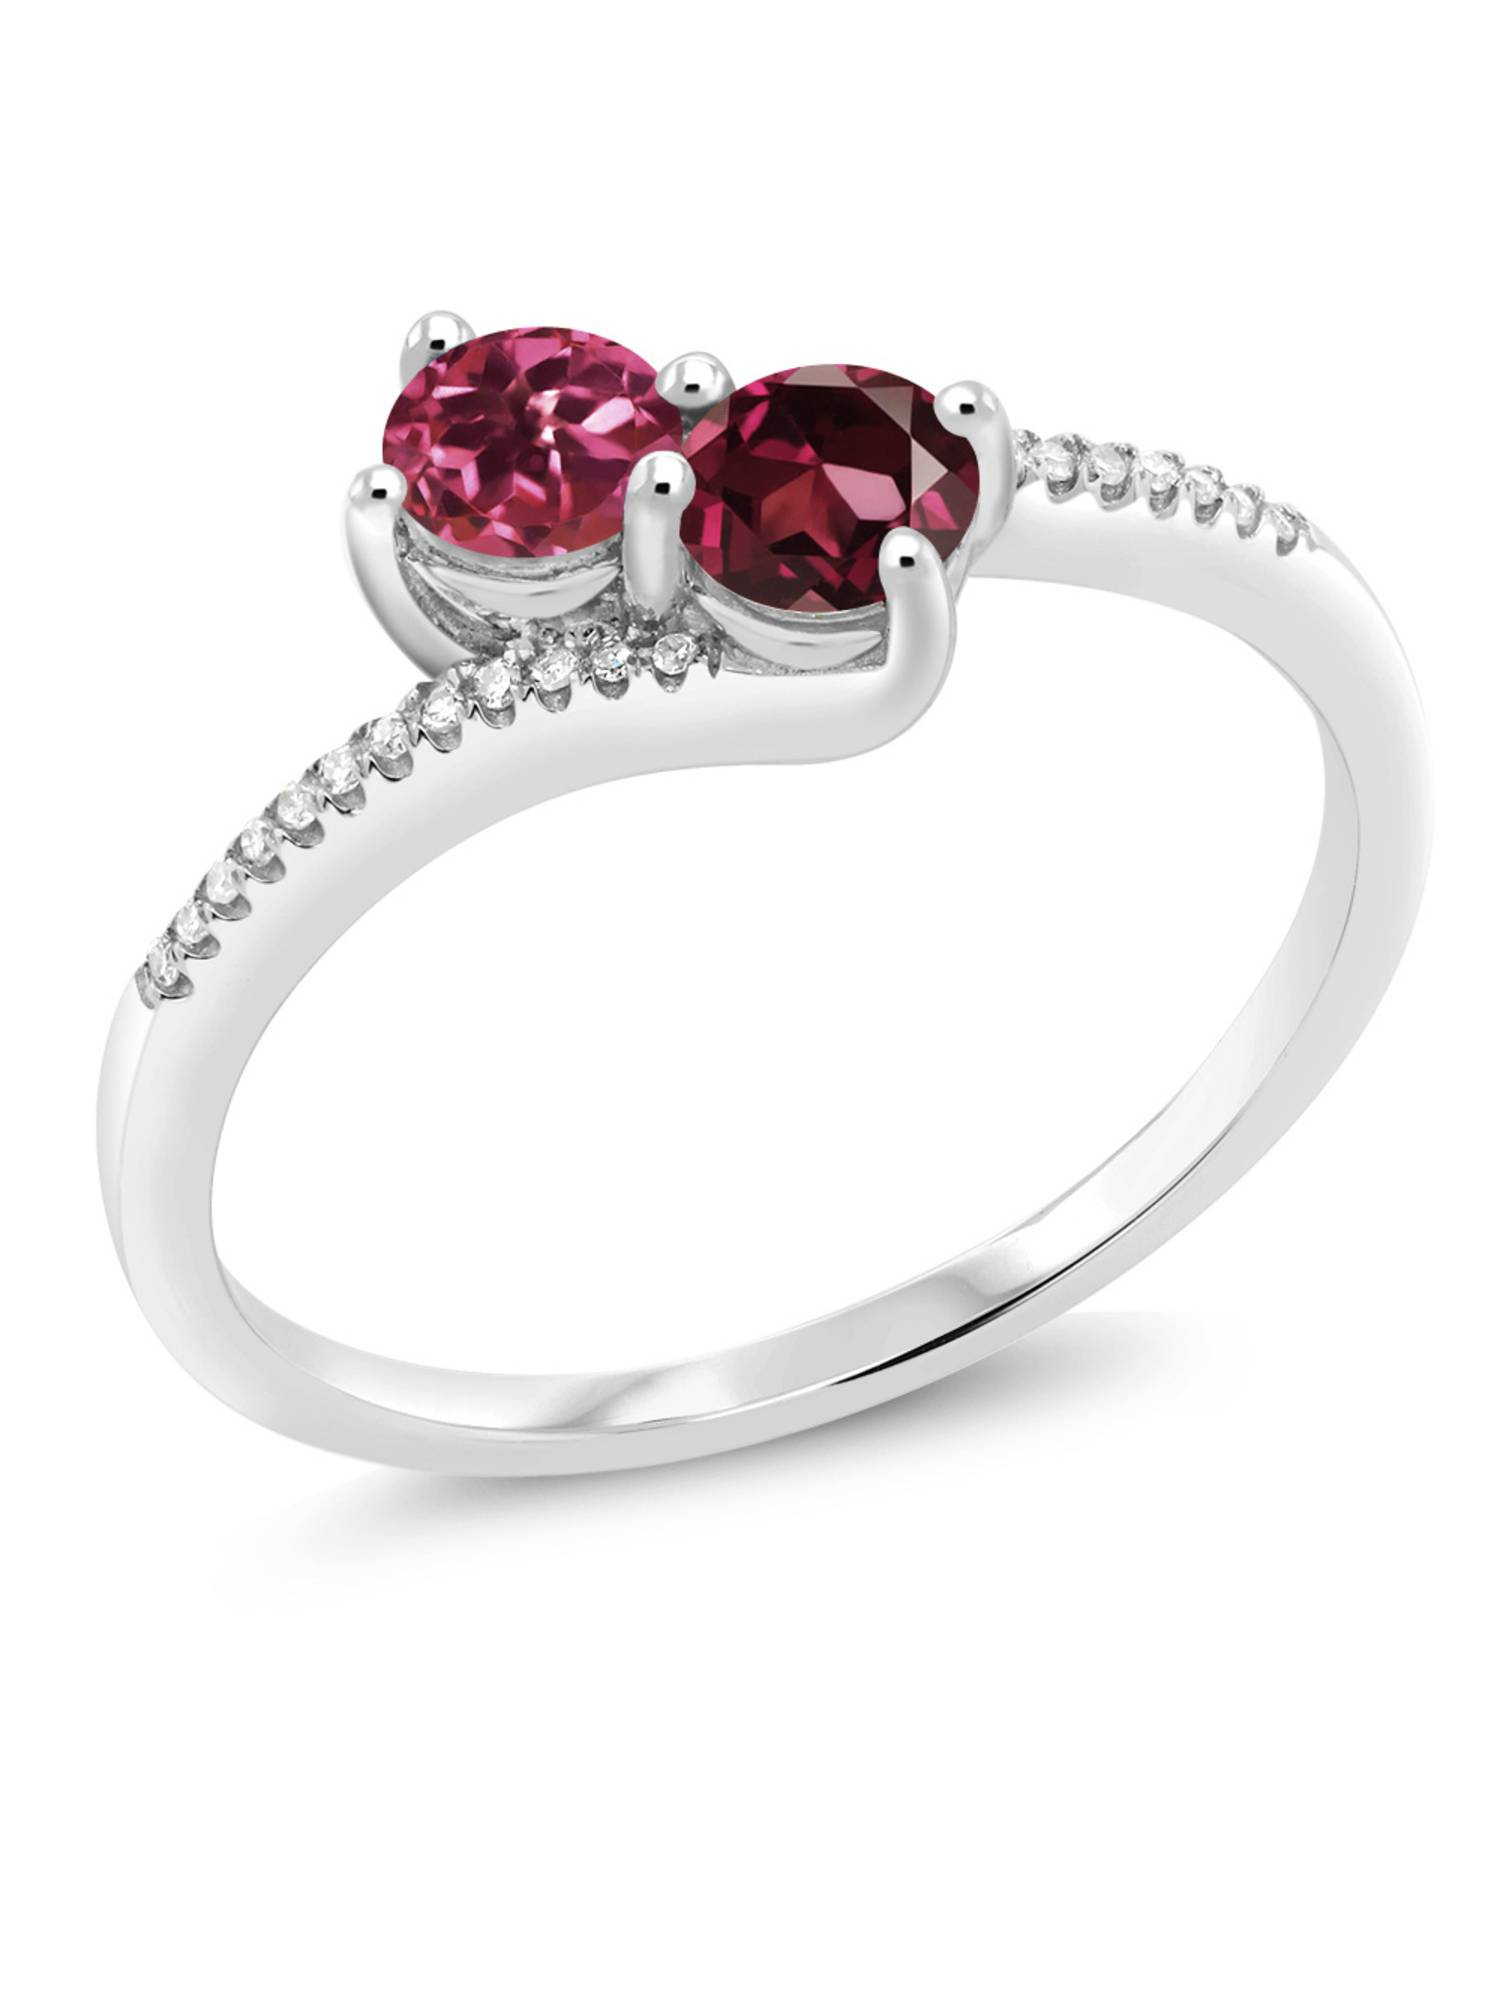 0.78 Ct Round Pink Tourmaline Red Rhodolite Garnet 10K White Gold Ring by